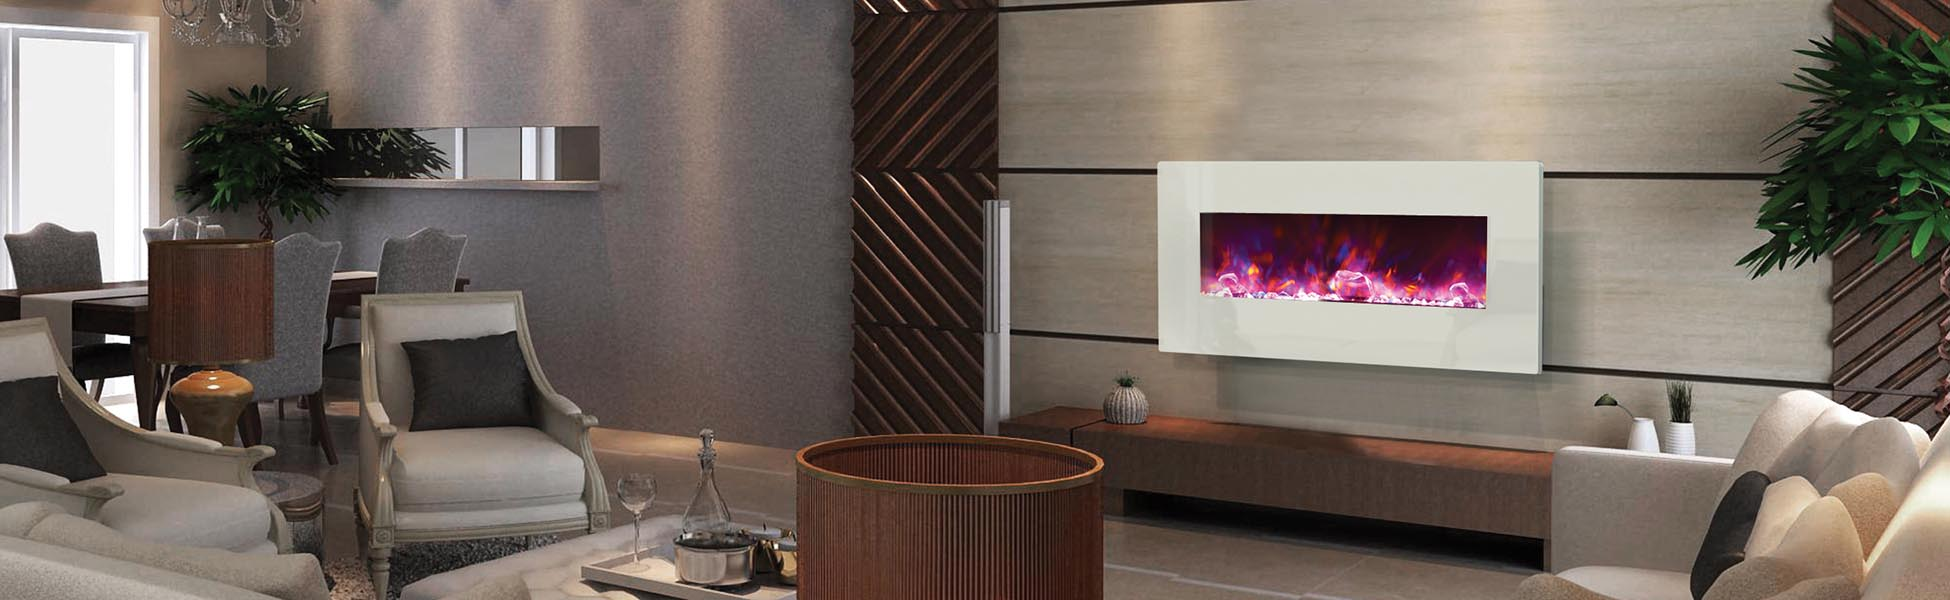 electric fireplace - wall mount